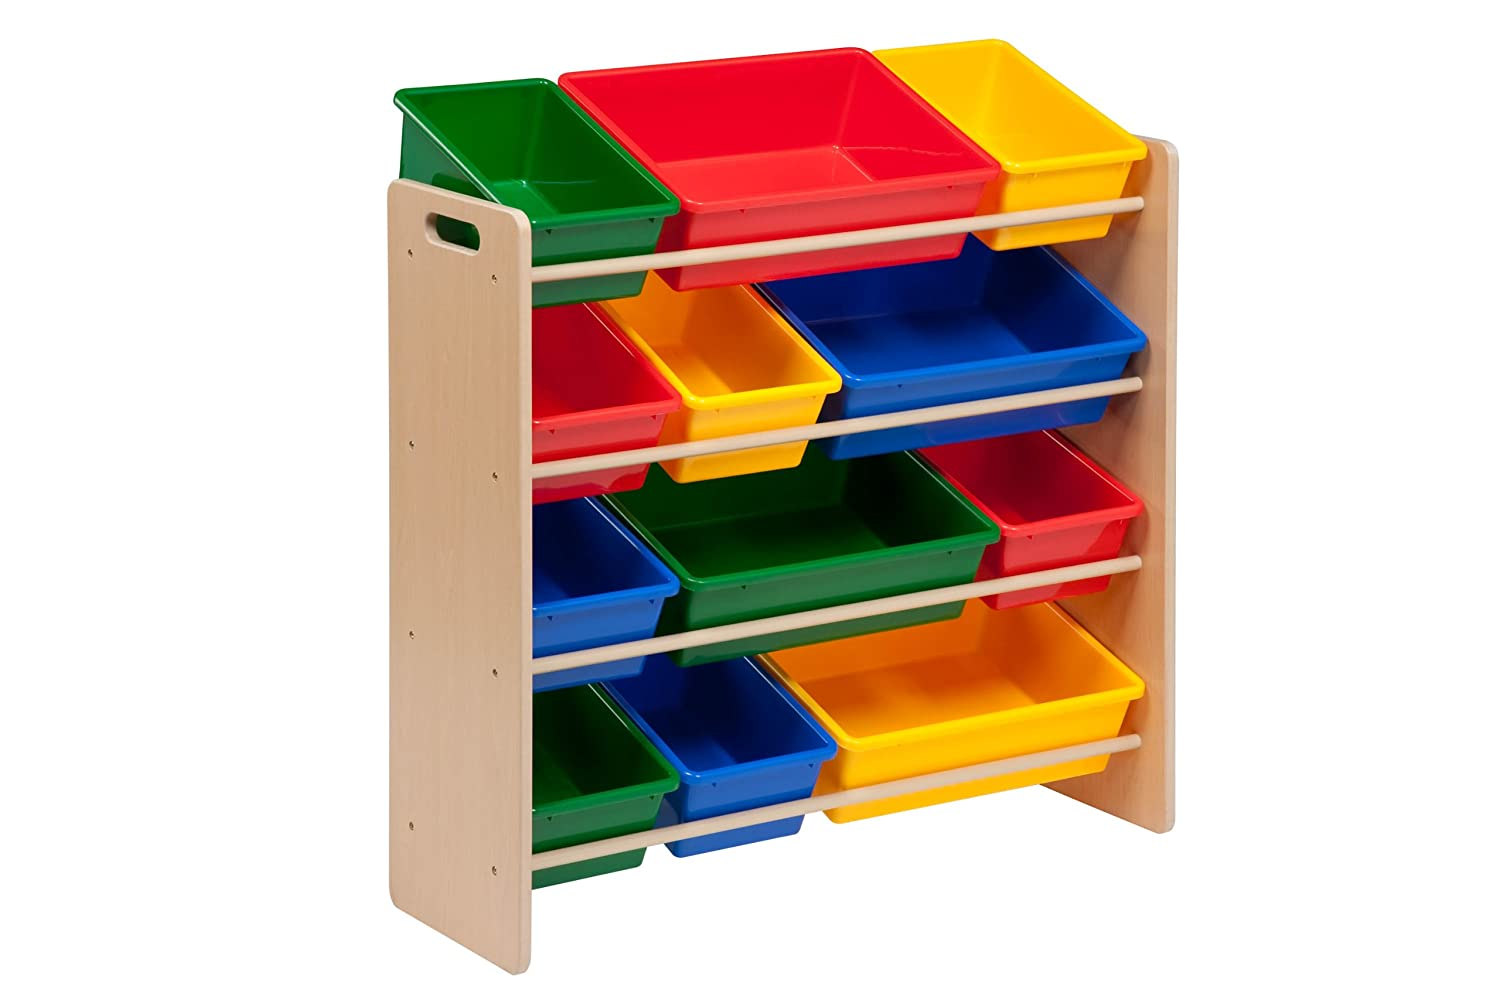 Toy organizer bins or stackable toy drawers to stow away games and puzzles can keep things out in the open, but still neat and tidy. Floors will be easy to keep clear thanks to cute wall organizers and easy ideas for stuffed animal storage.